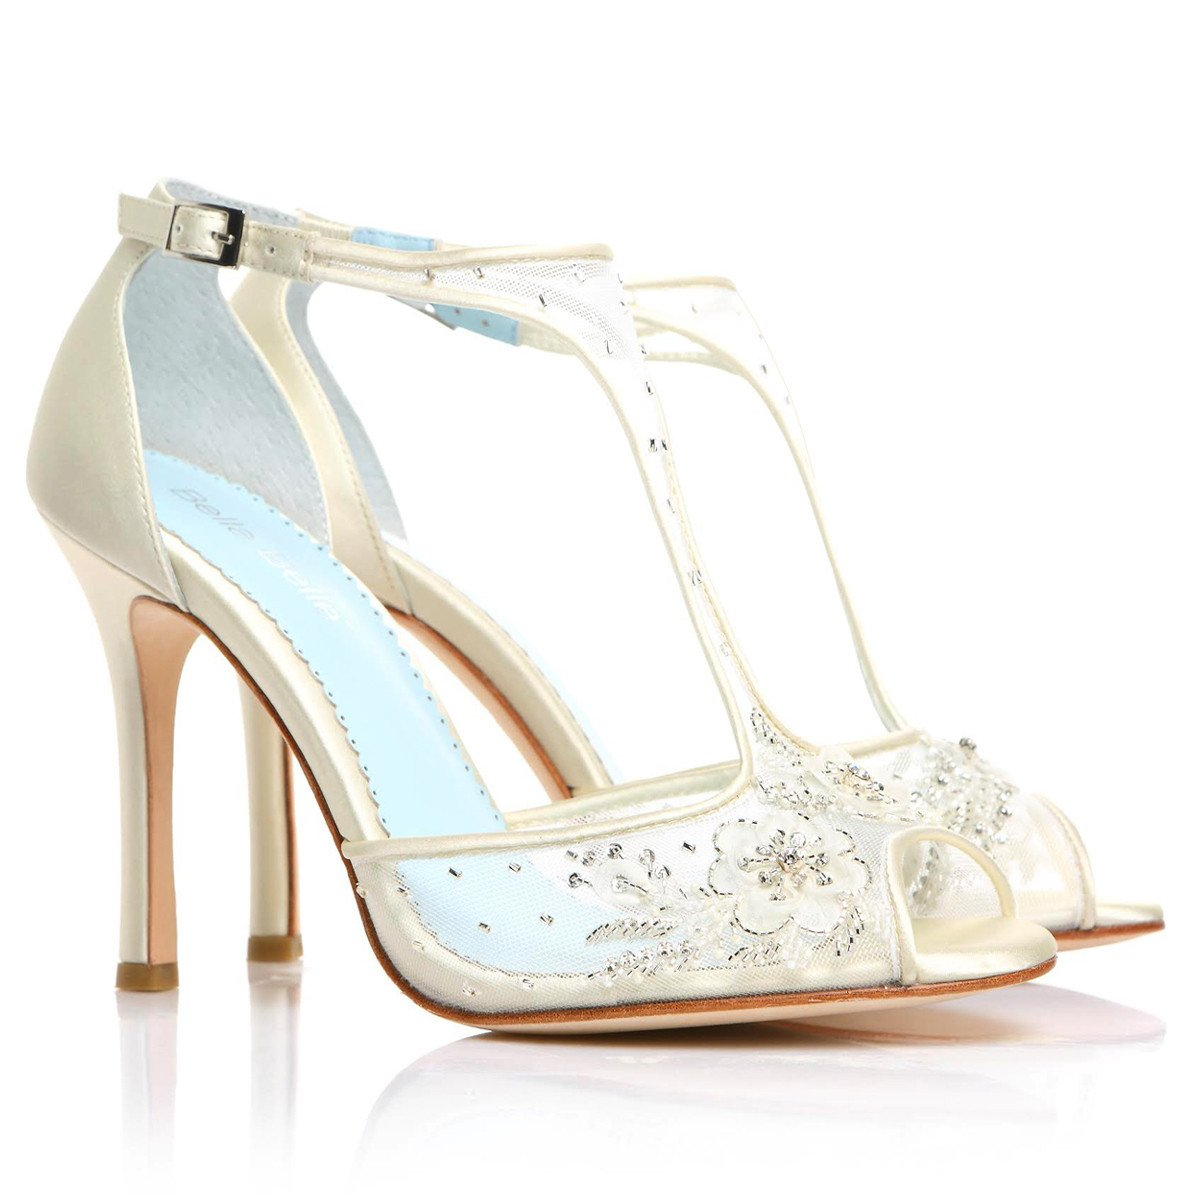 Bella Belle Wedding Shoes - Paloma - T Strap Beaded Heels